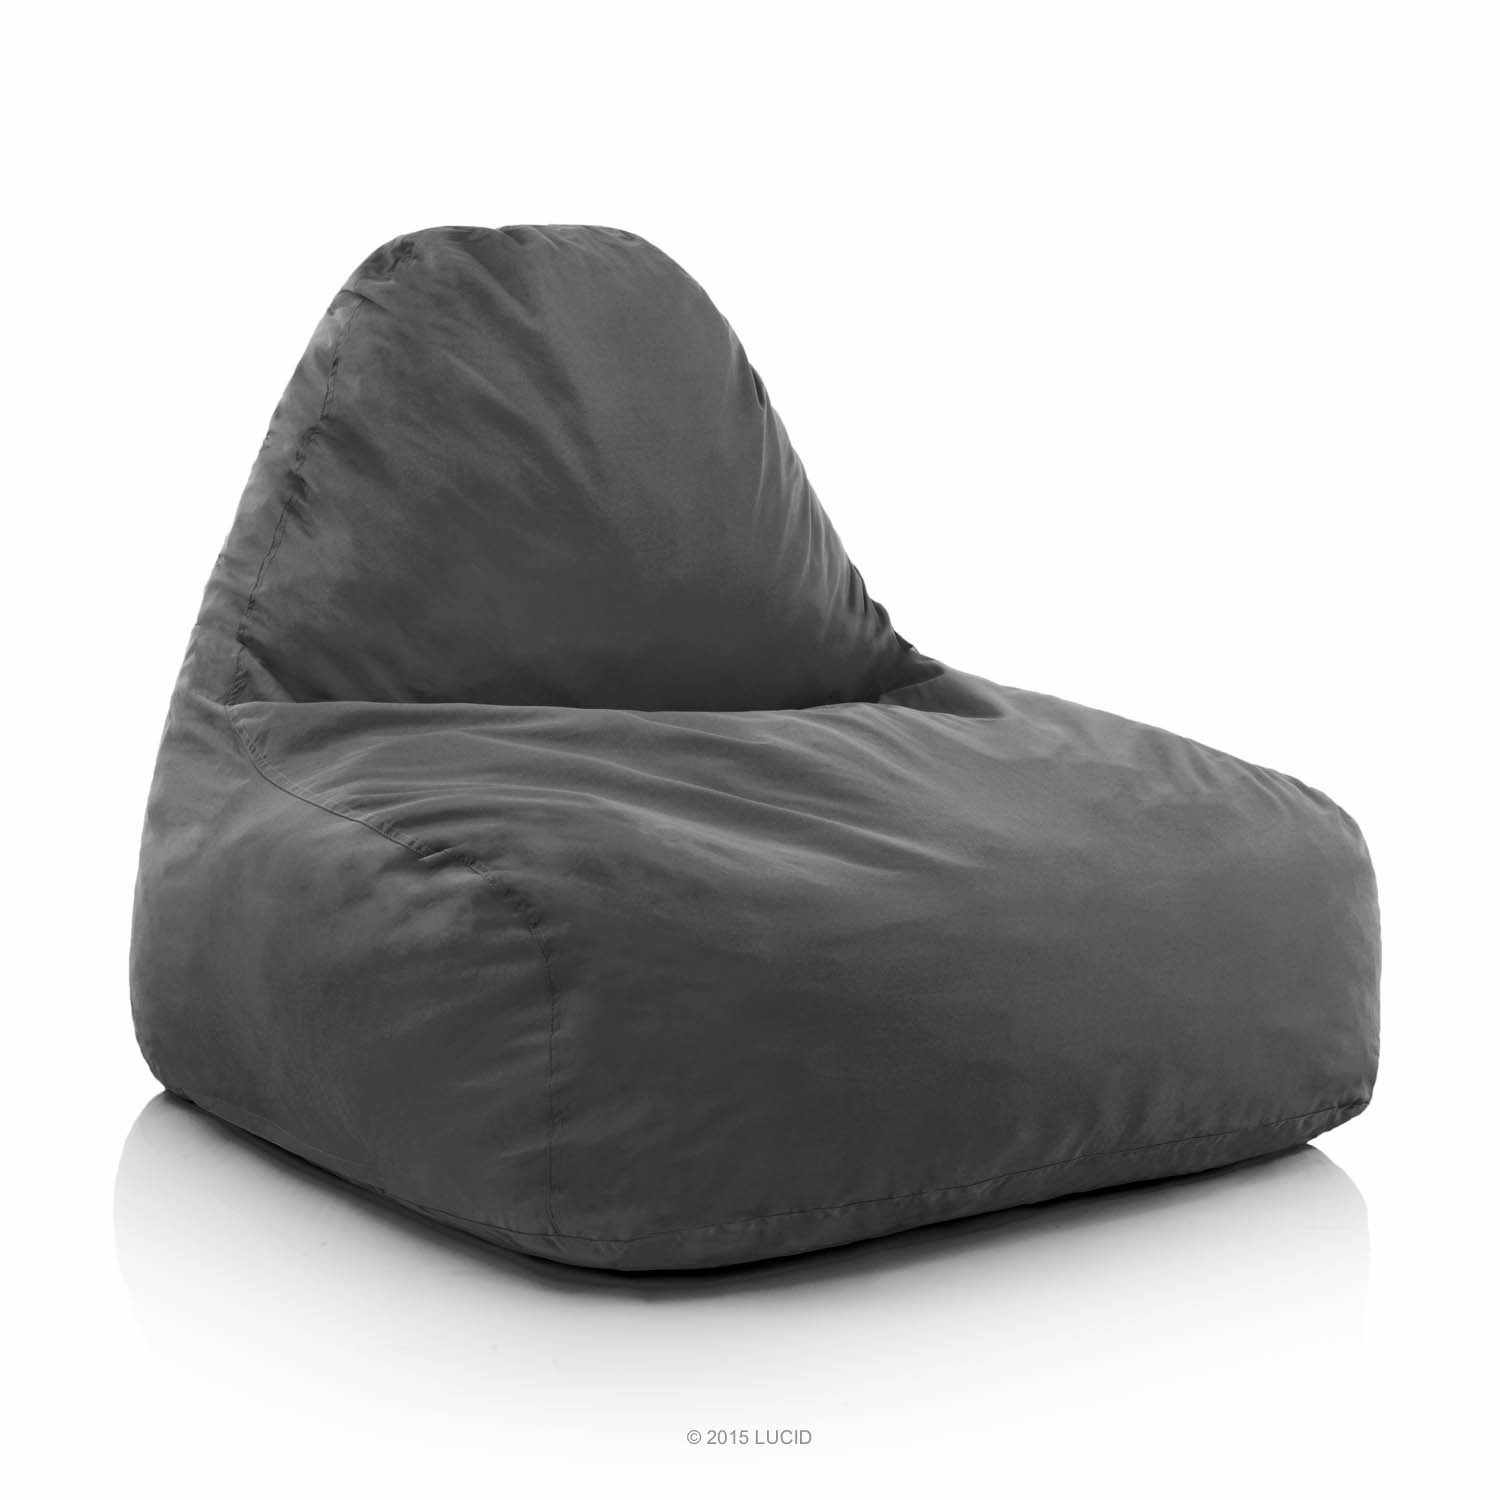 LUCID Oversized Shredded Foam Lounge Chair - Charcoal by LUCID